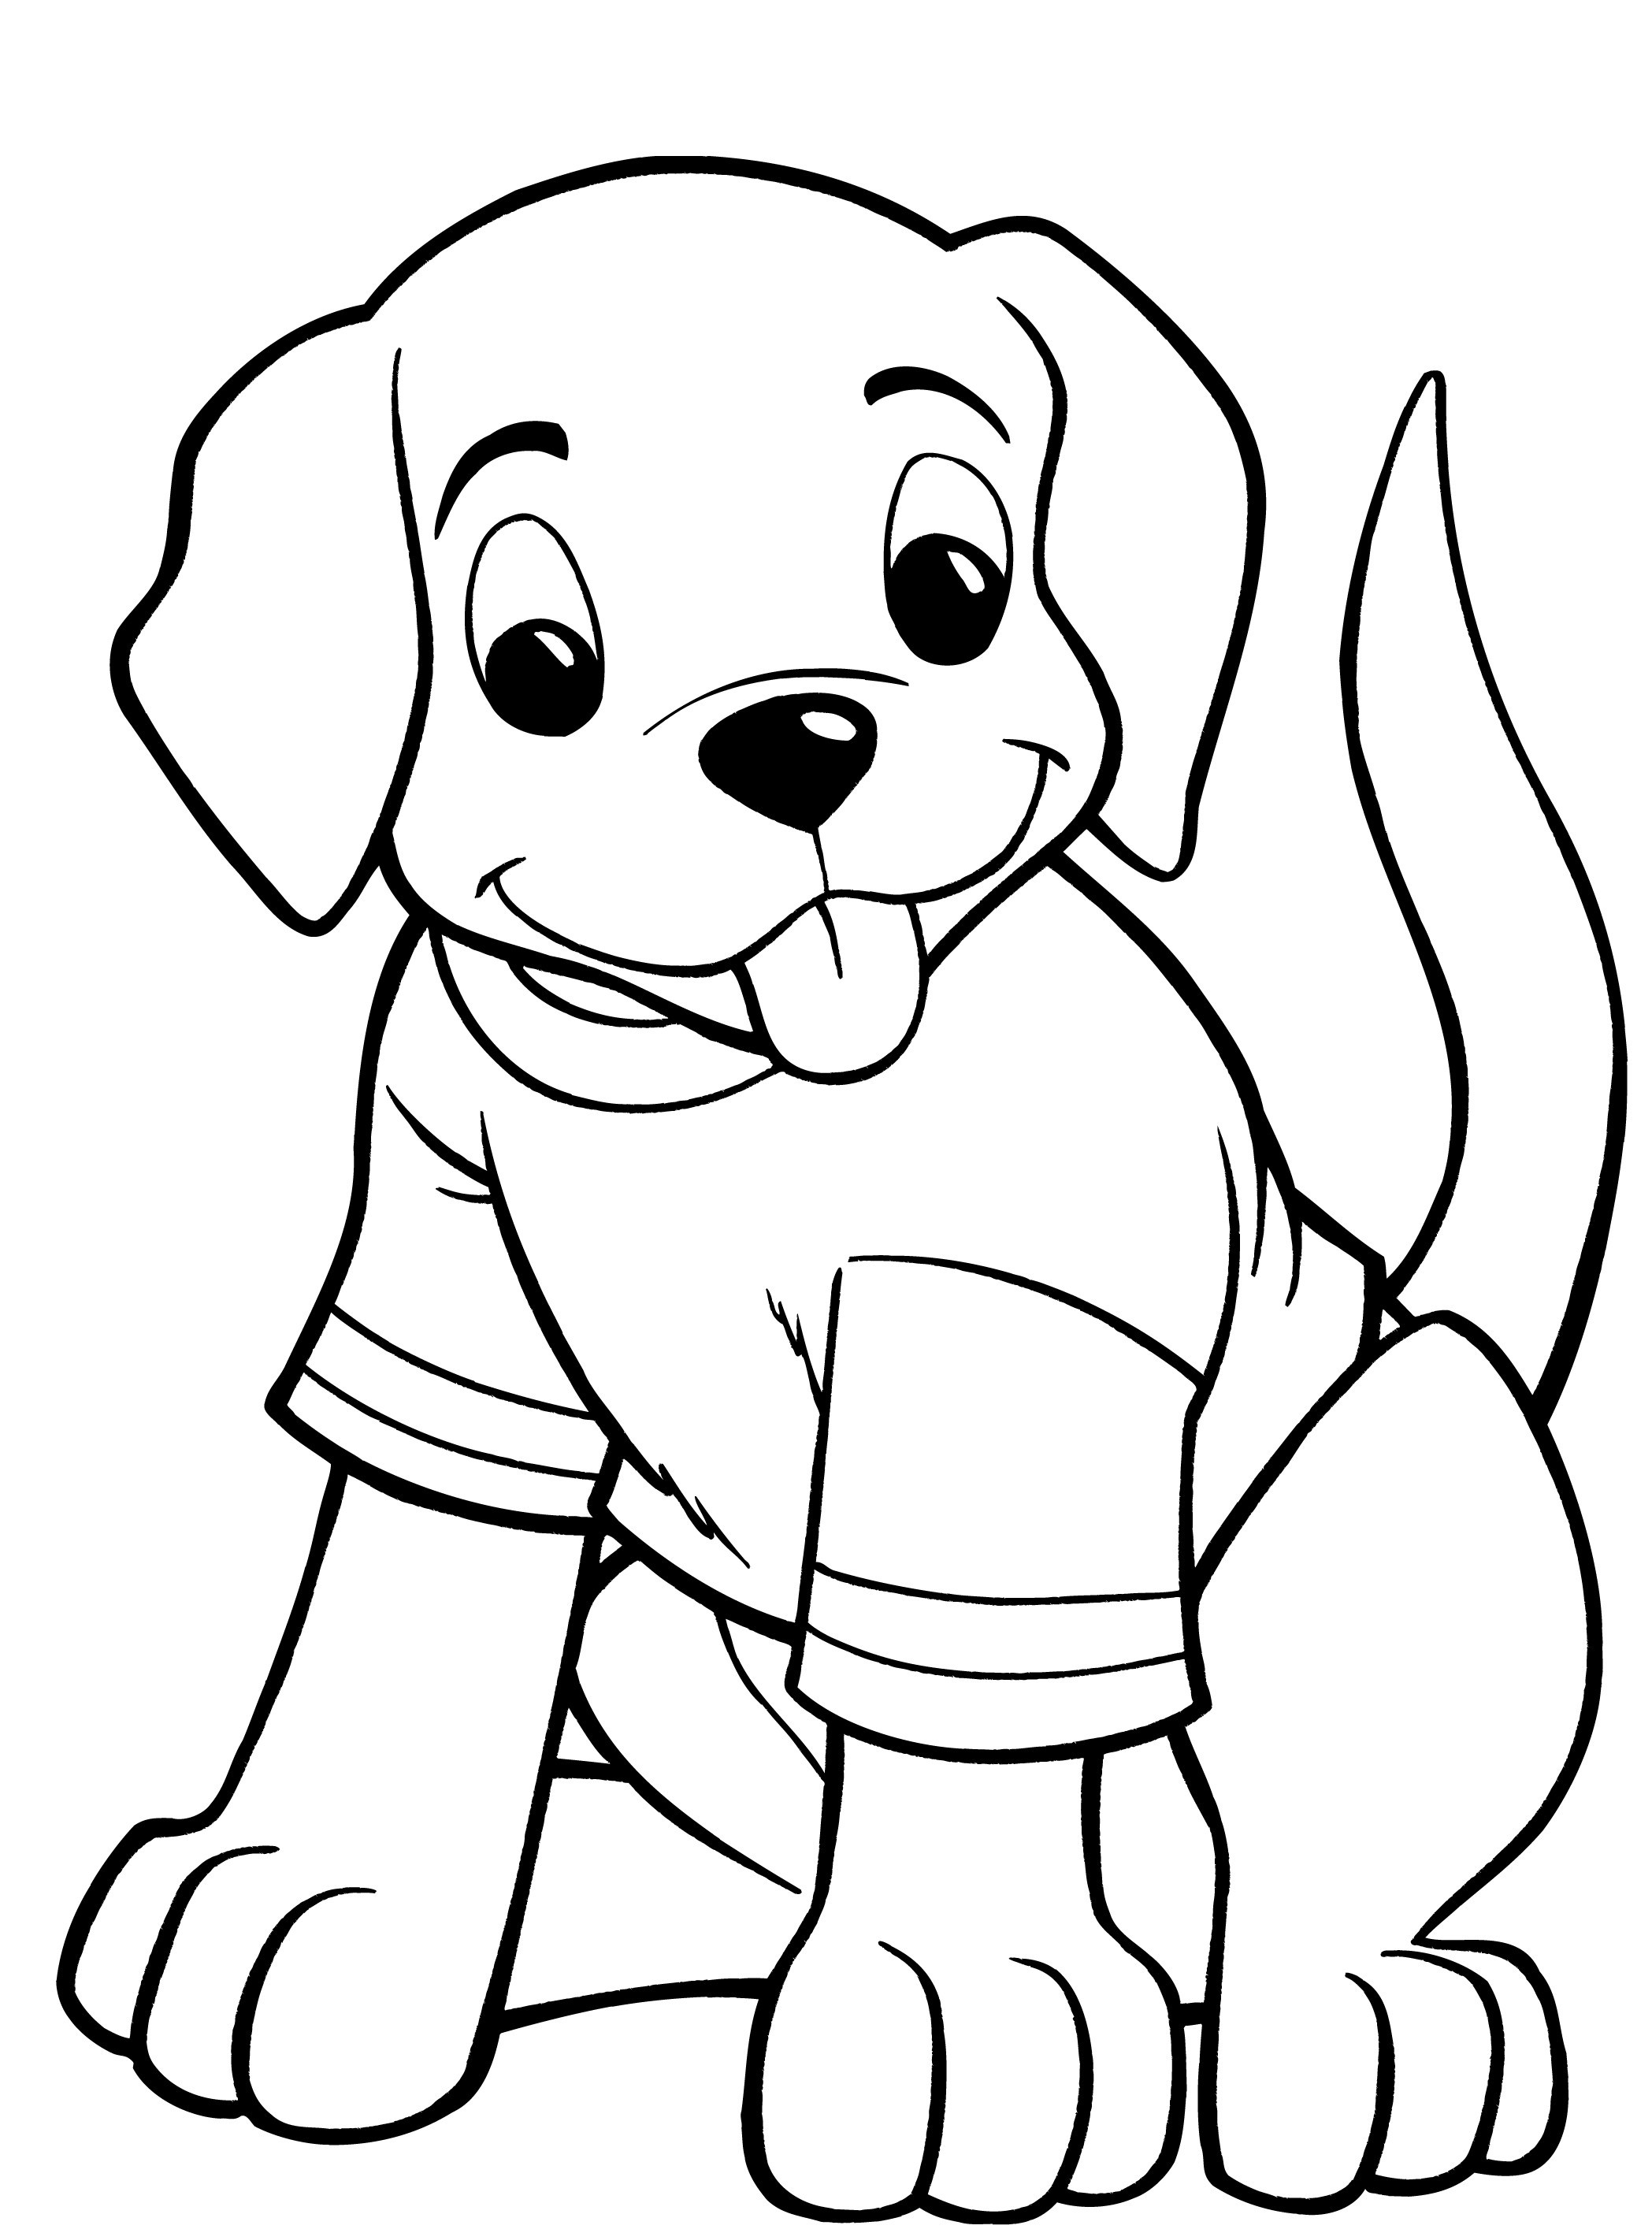 dogs pictures to print puppy dog coloring pages to download and print for free to print pictures dogs